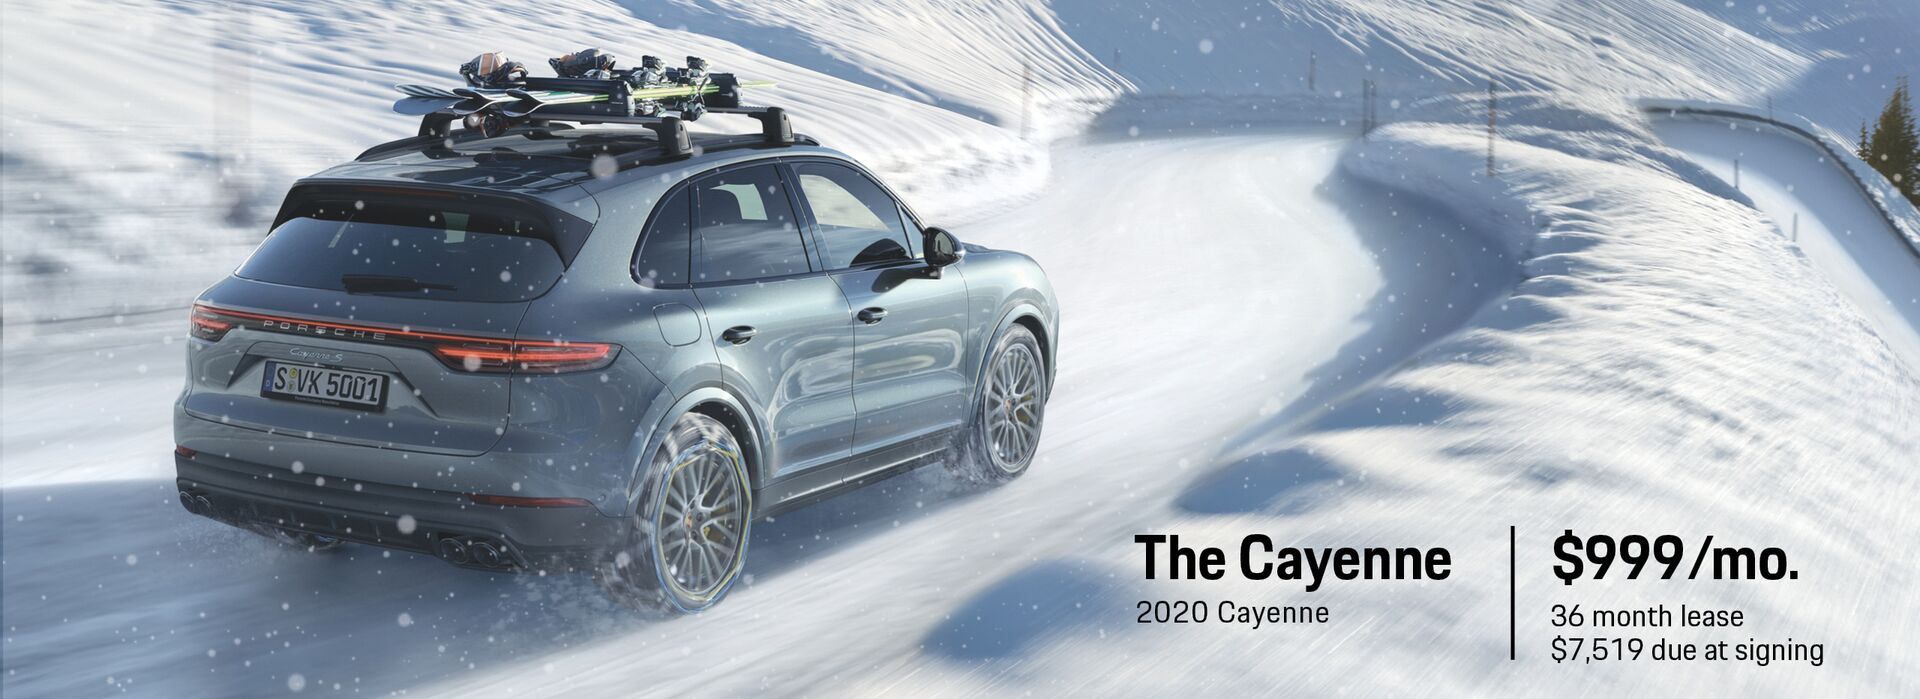 December Lease Deal 2020 Cayenne